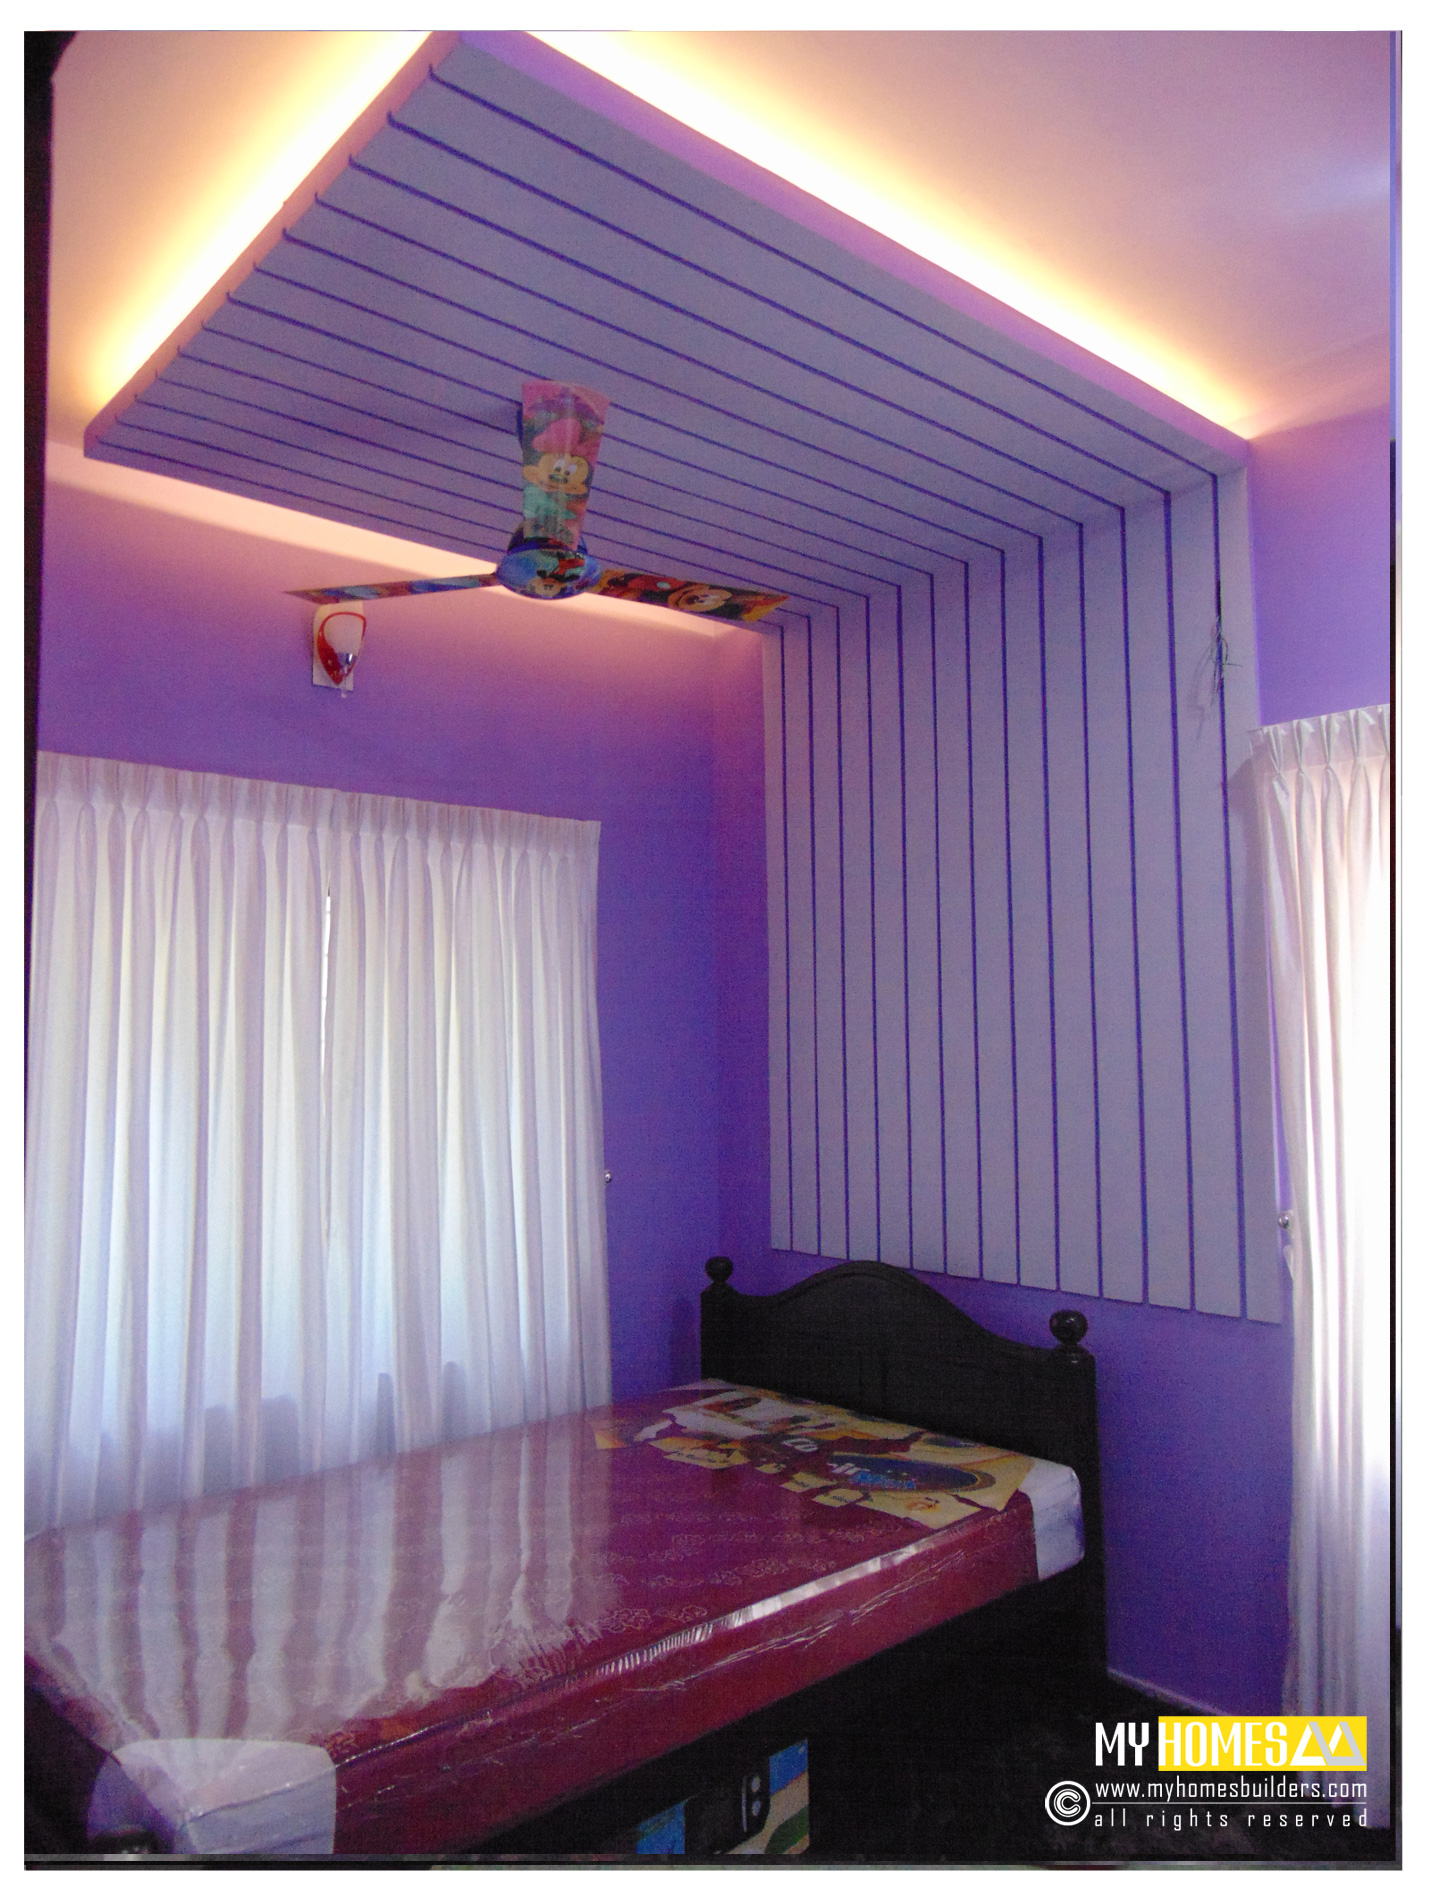 Simple style interior ideal kids bedroom designs in kerala india - Latest bedroom design ...